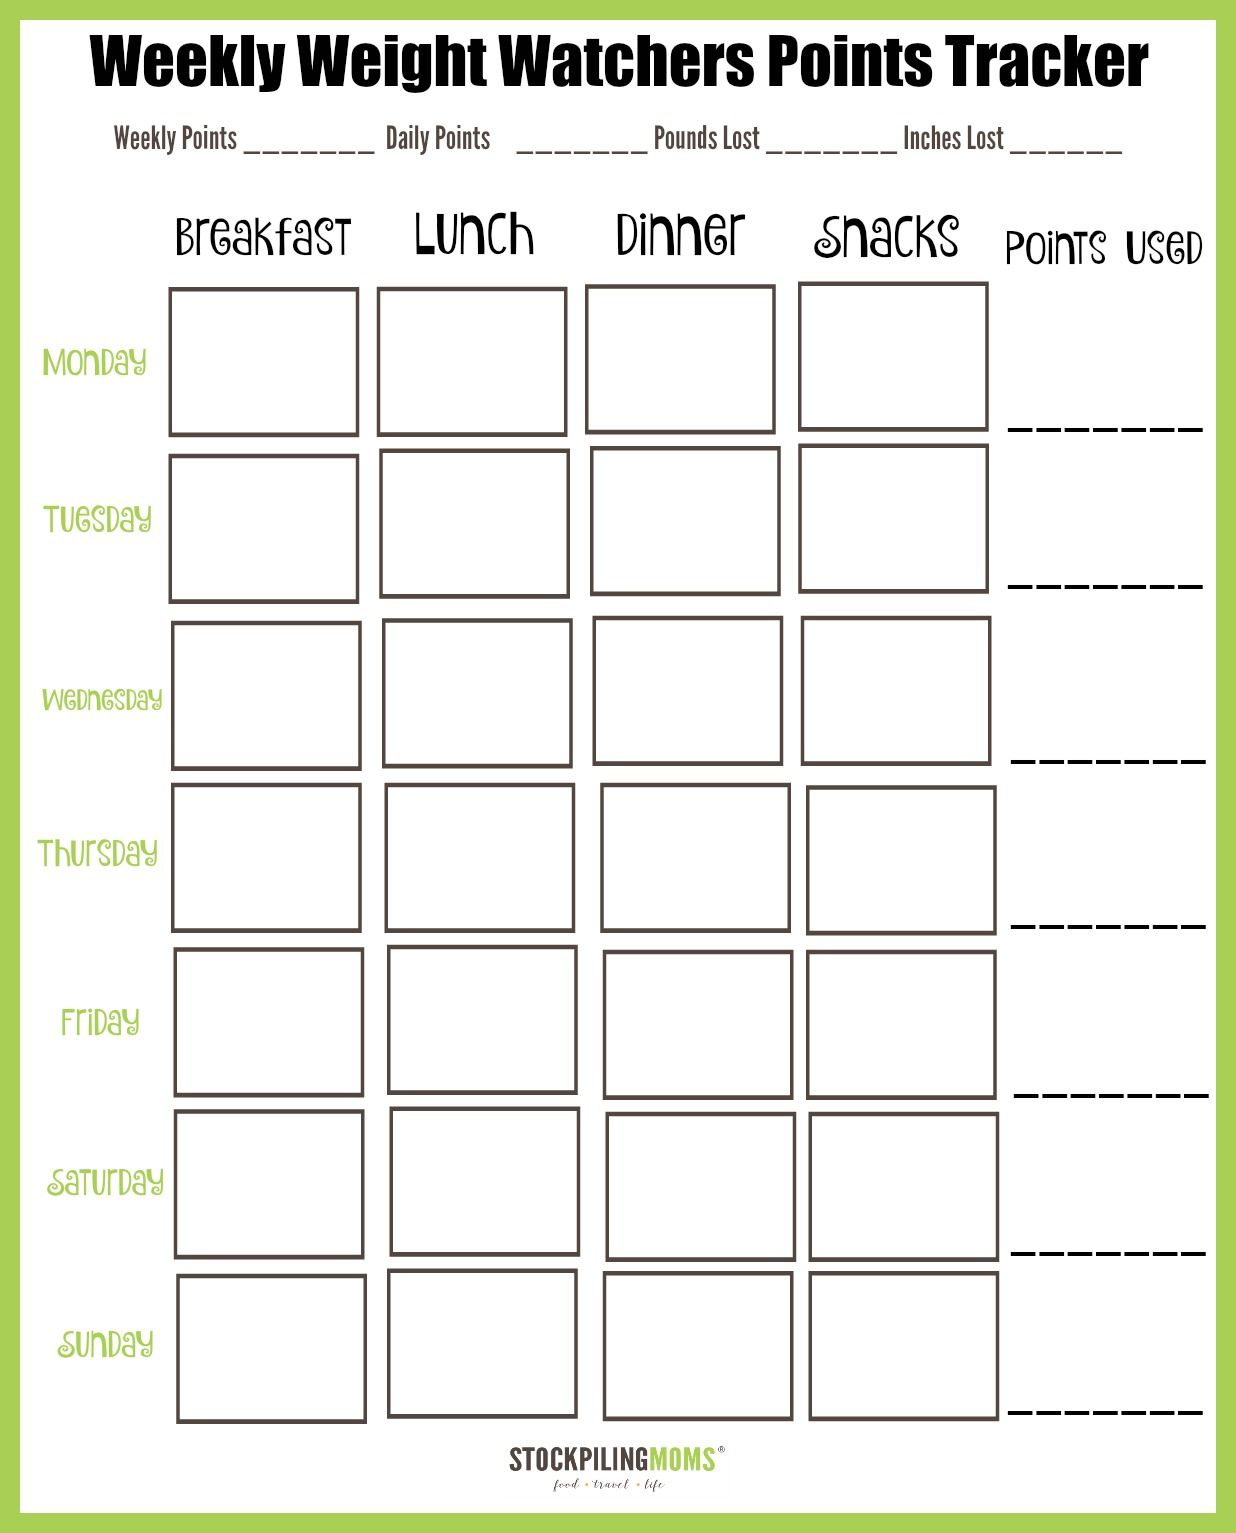 weight watchers weekly points tracker free printable healthy